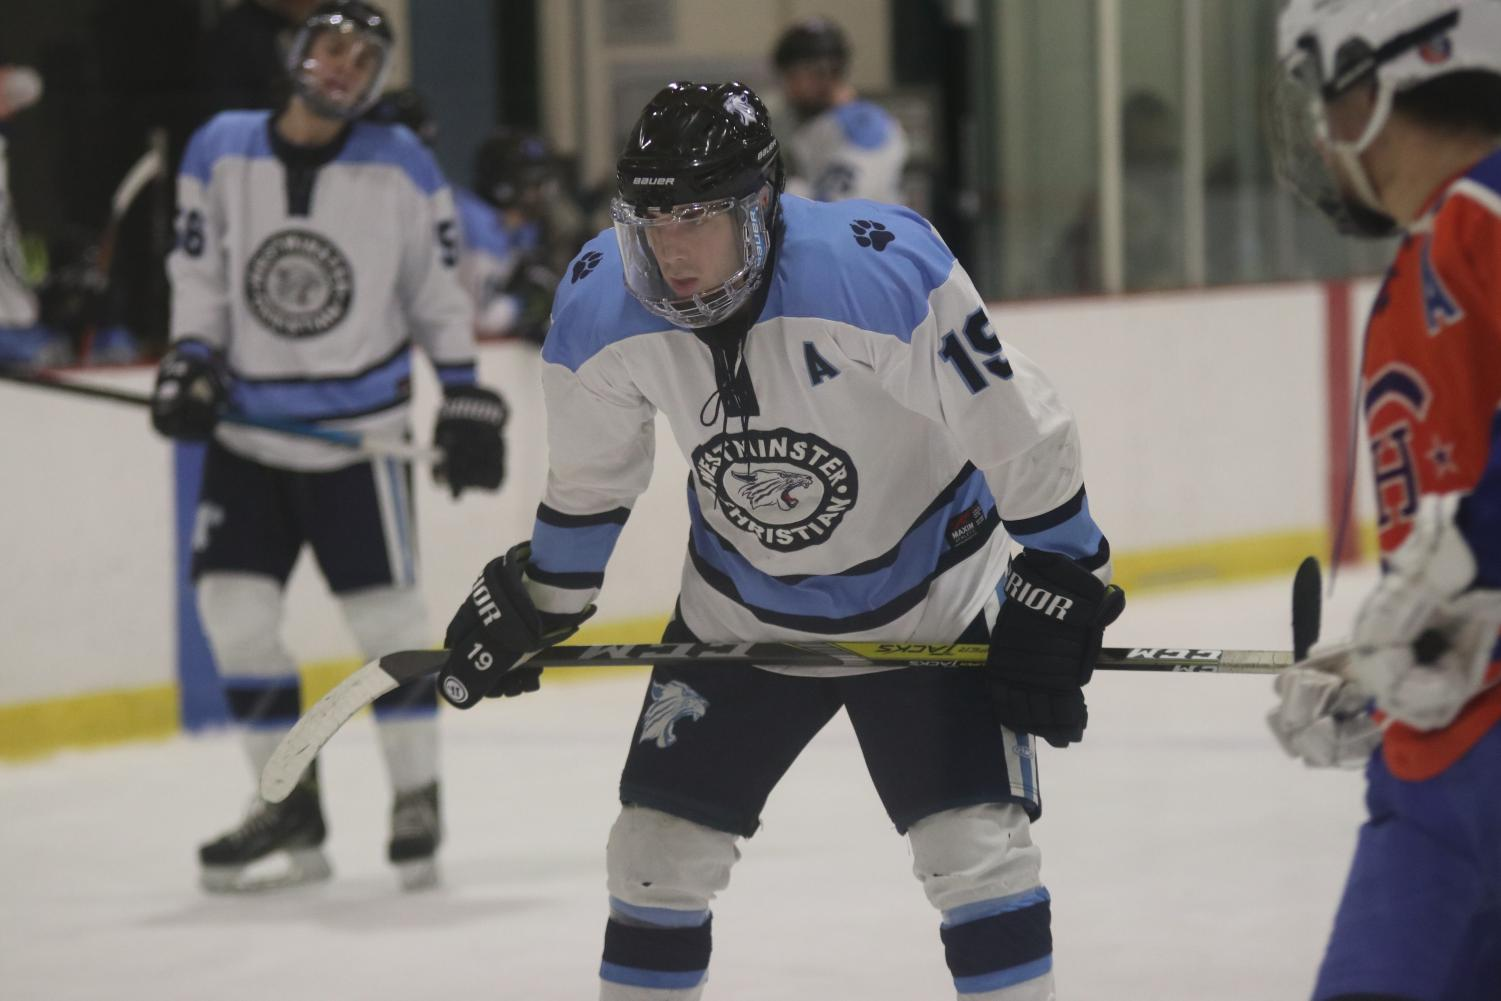 Ben Parres has been a leading scorer for the Wildcats this year.